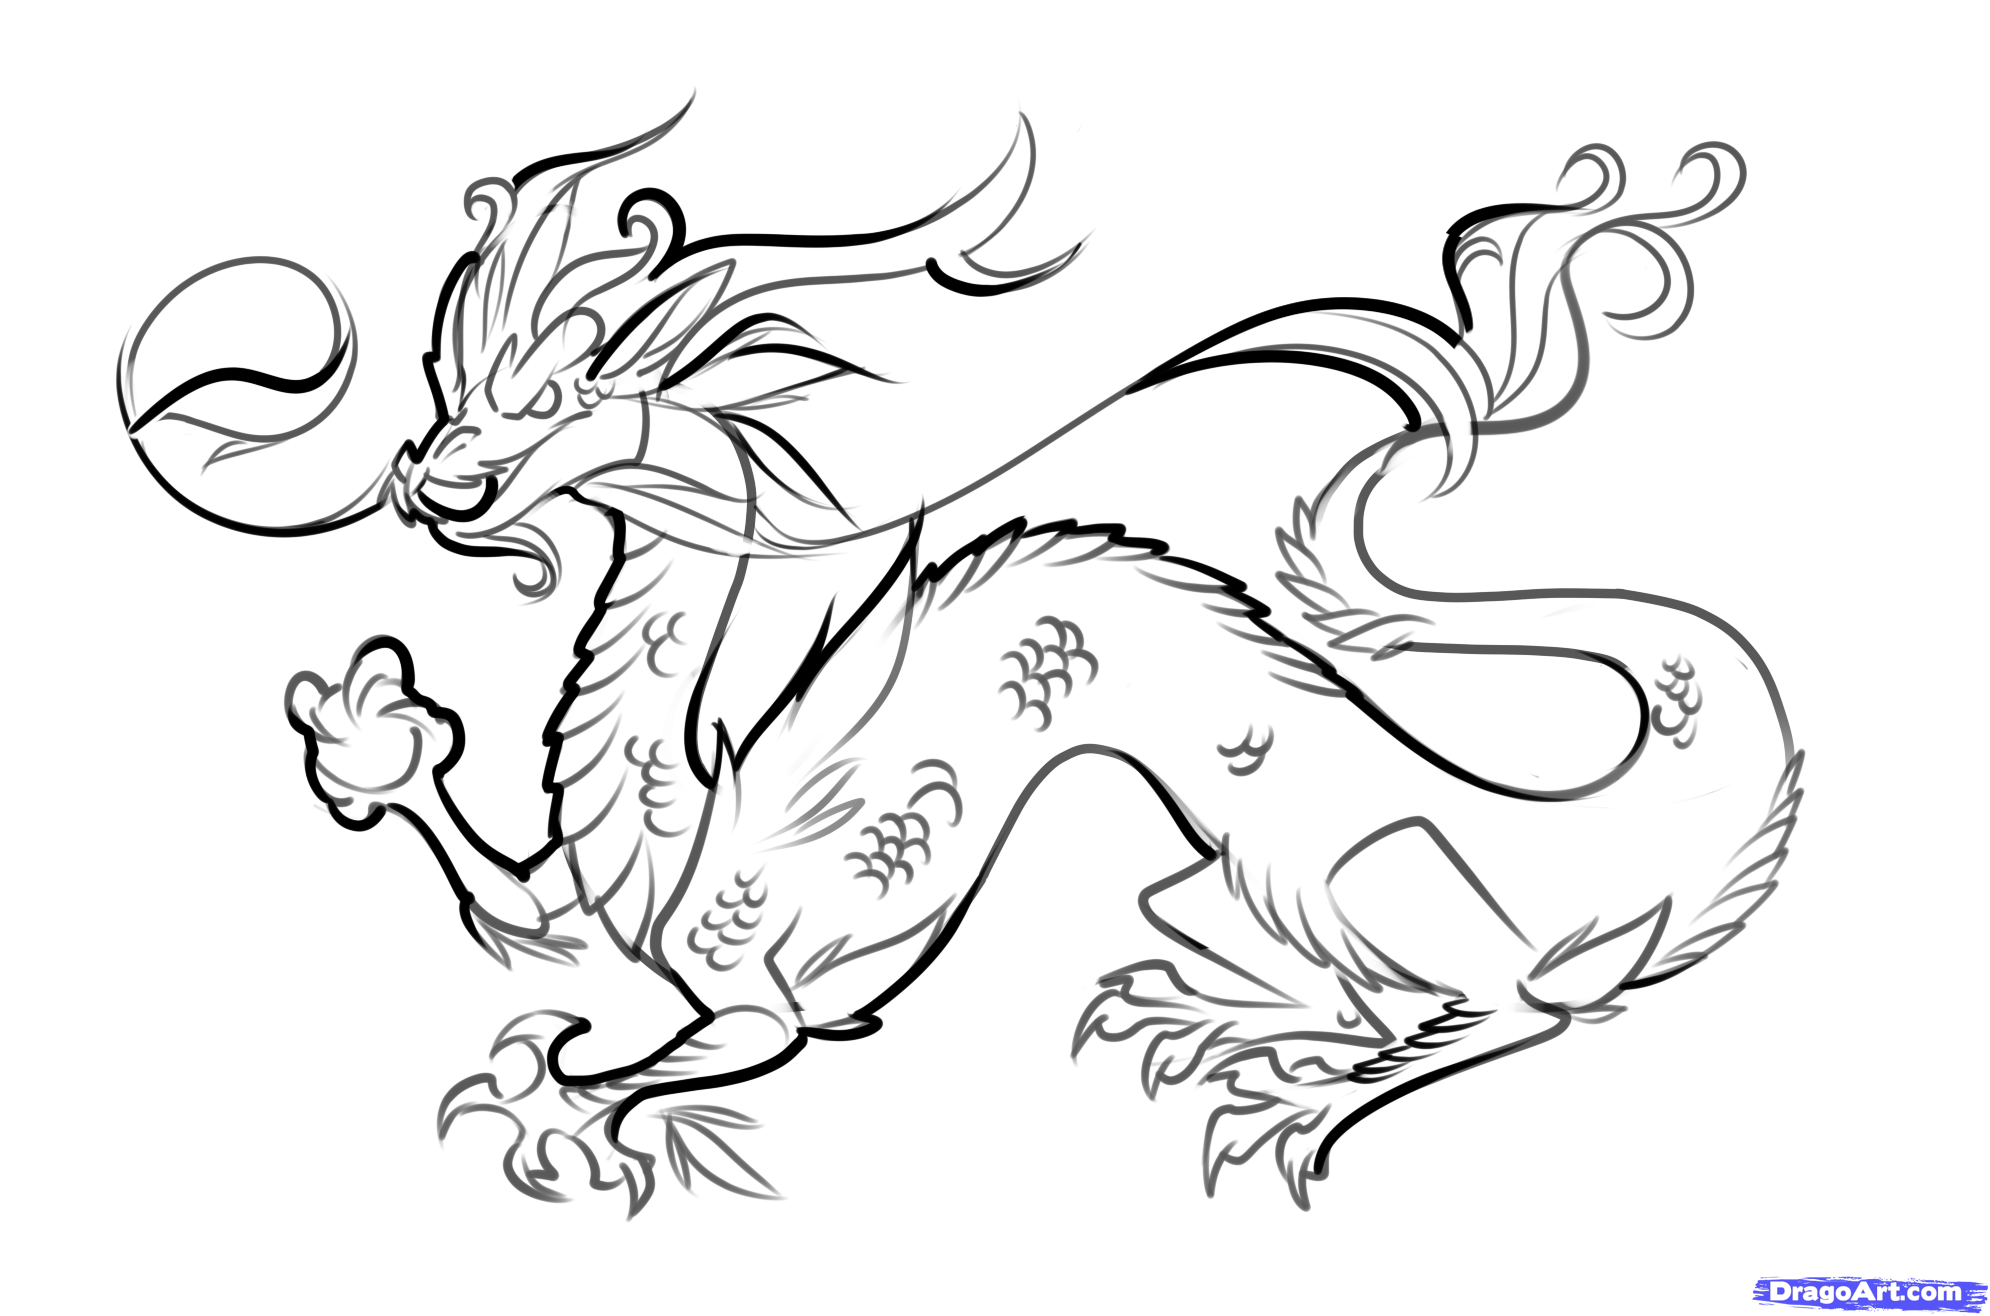 Chinese Dragon clipart easy A Chinese to Drawing Dragon